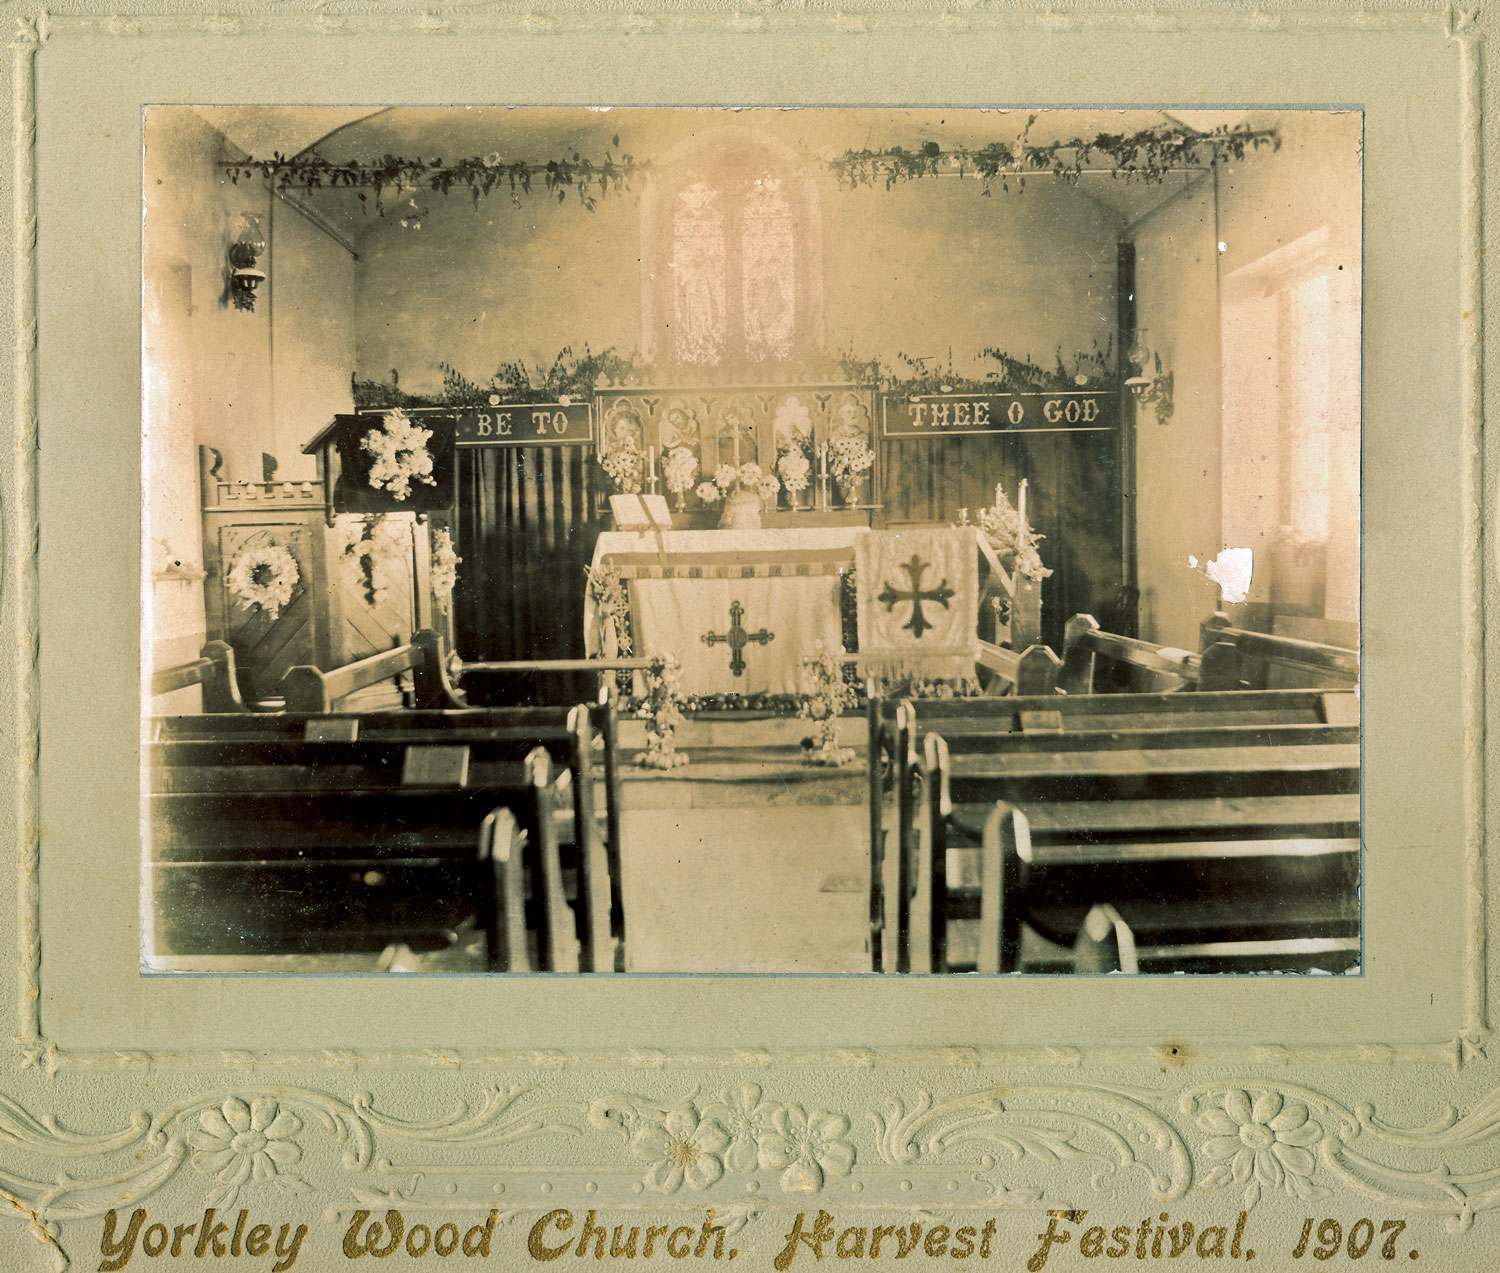 A photo showing Yorkley Wood Mission Church in 1907